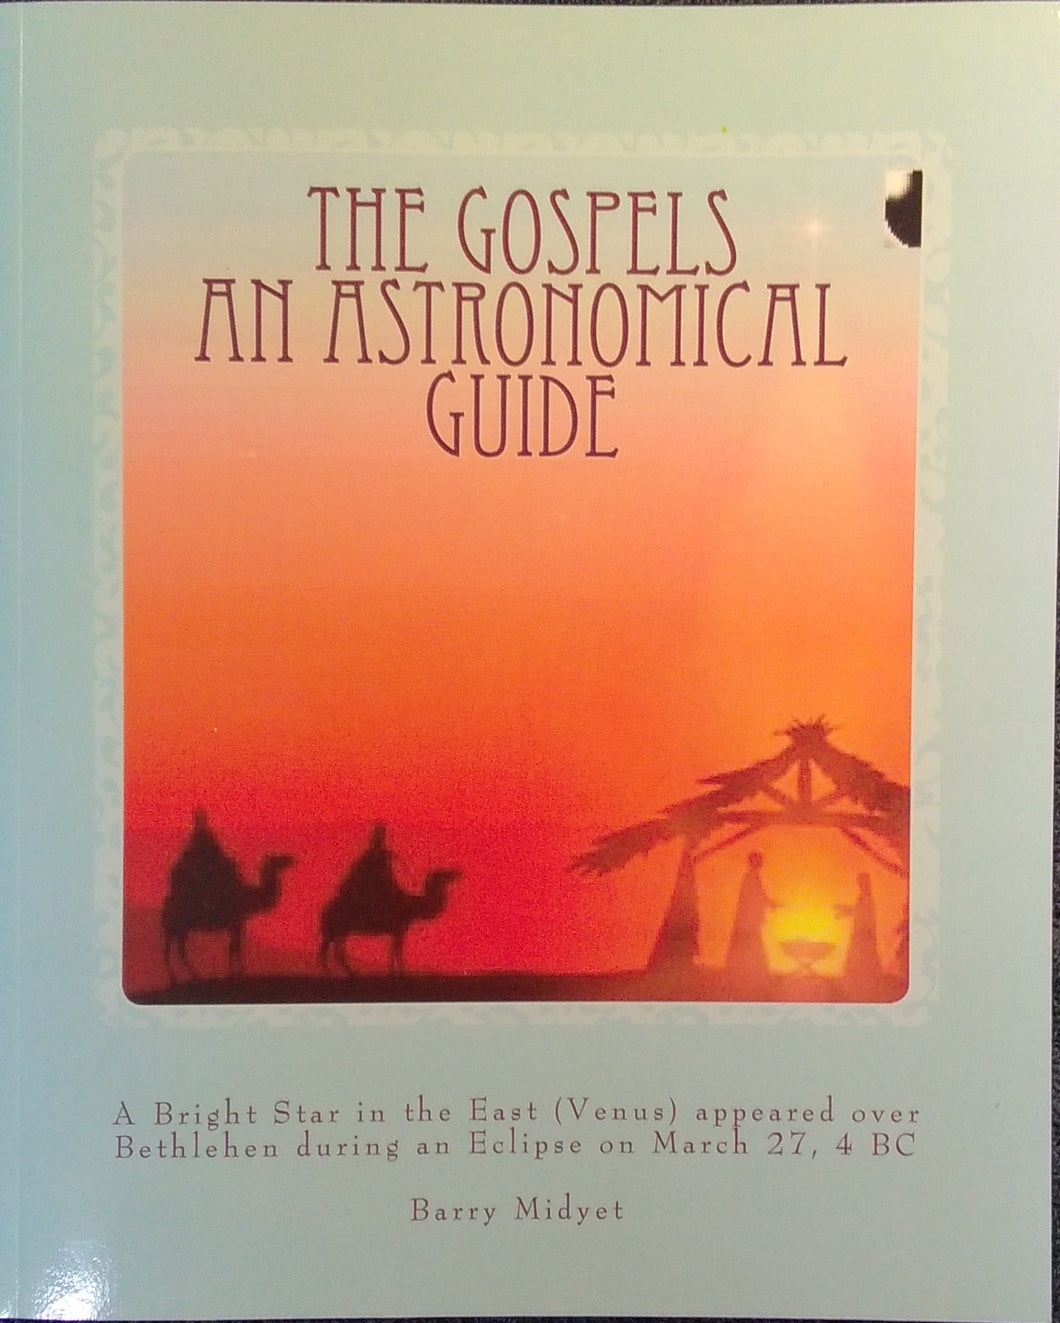 The Gospels: An Astronomical Guide